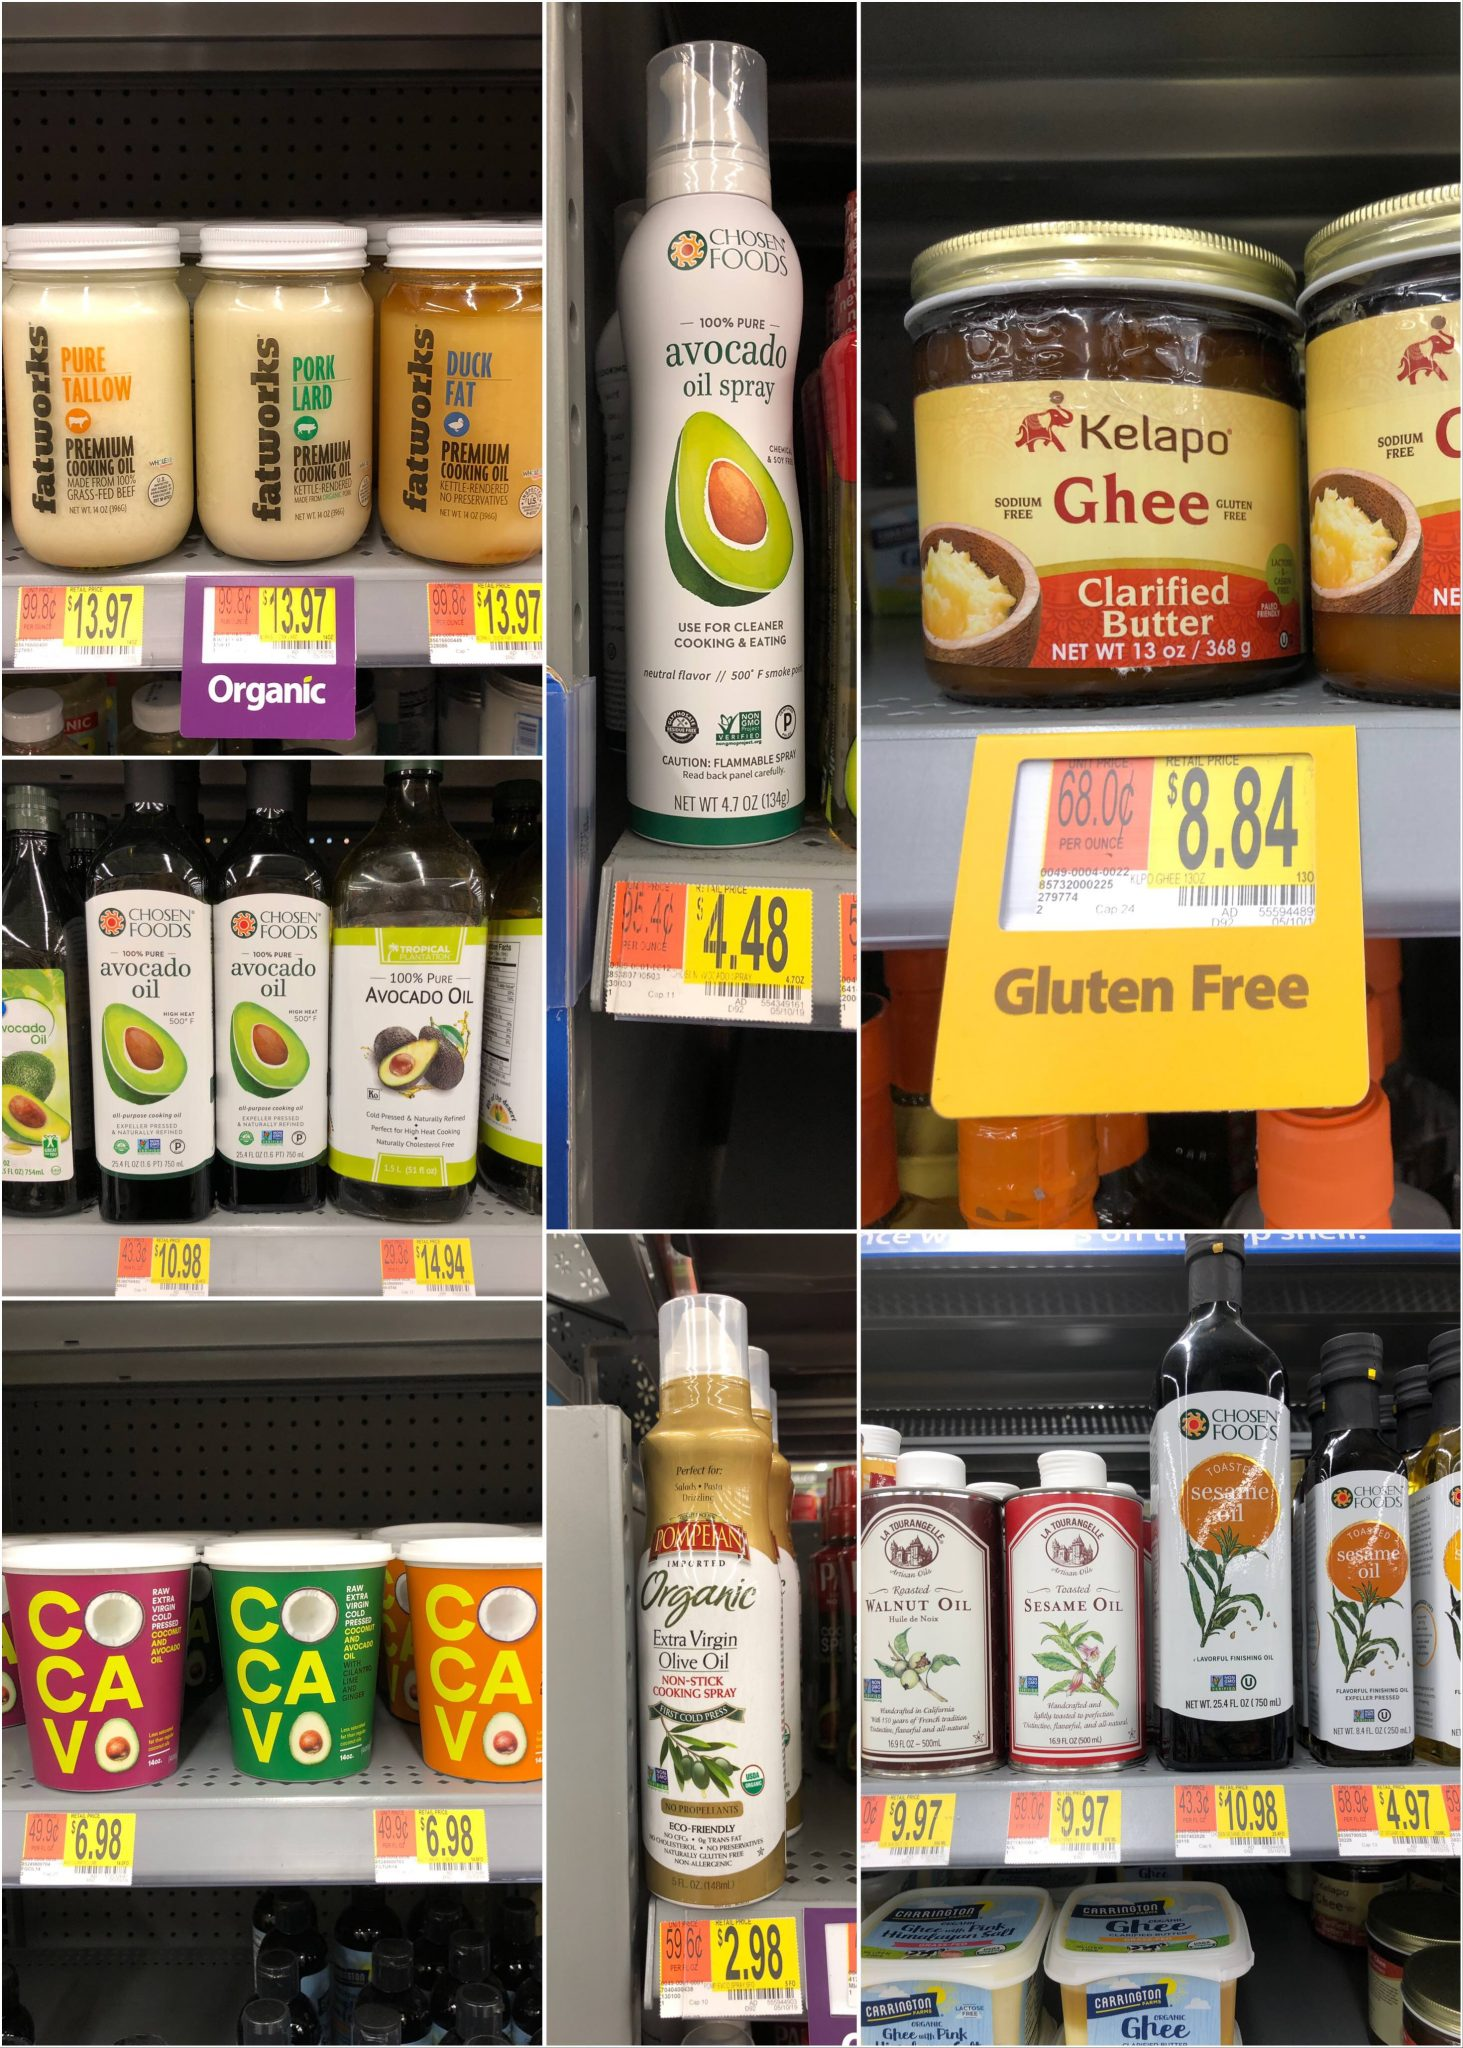 The Whole30 compliant oils, ghee, and animal fats with prices that are available at Walmart.